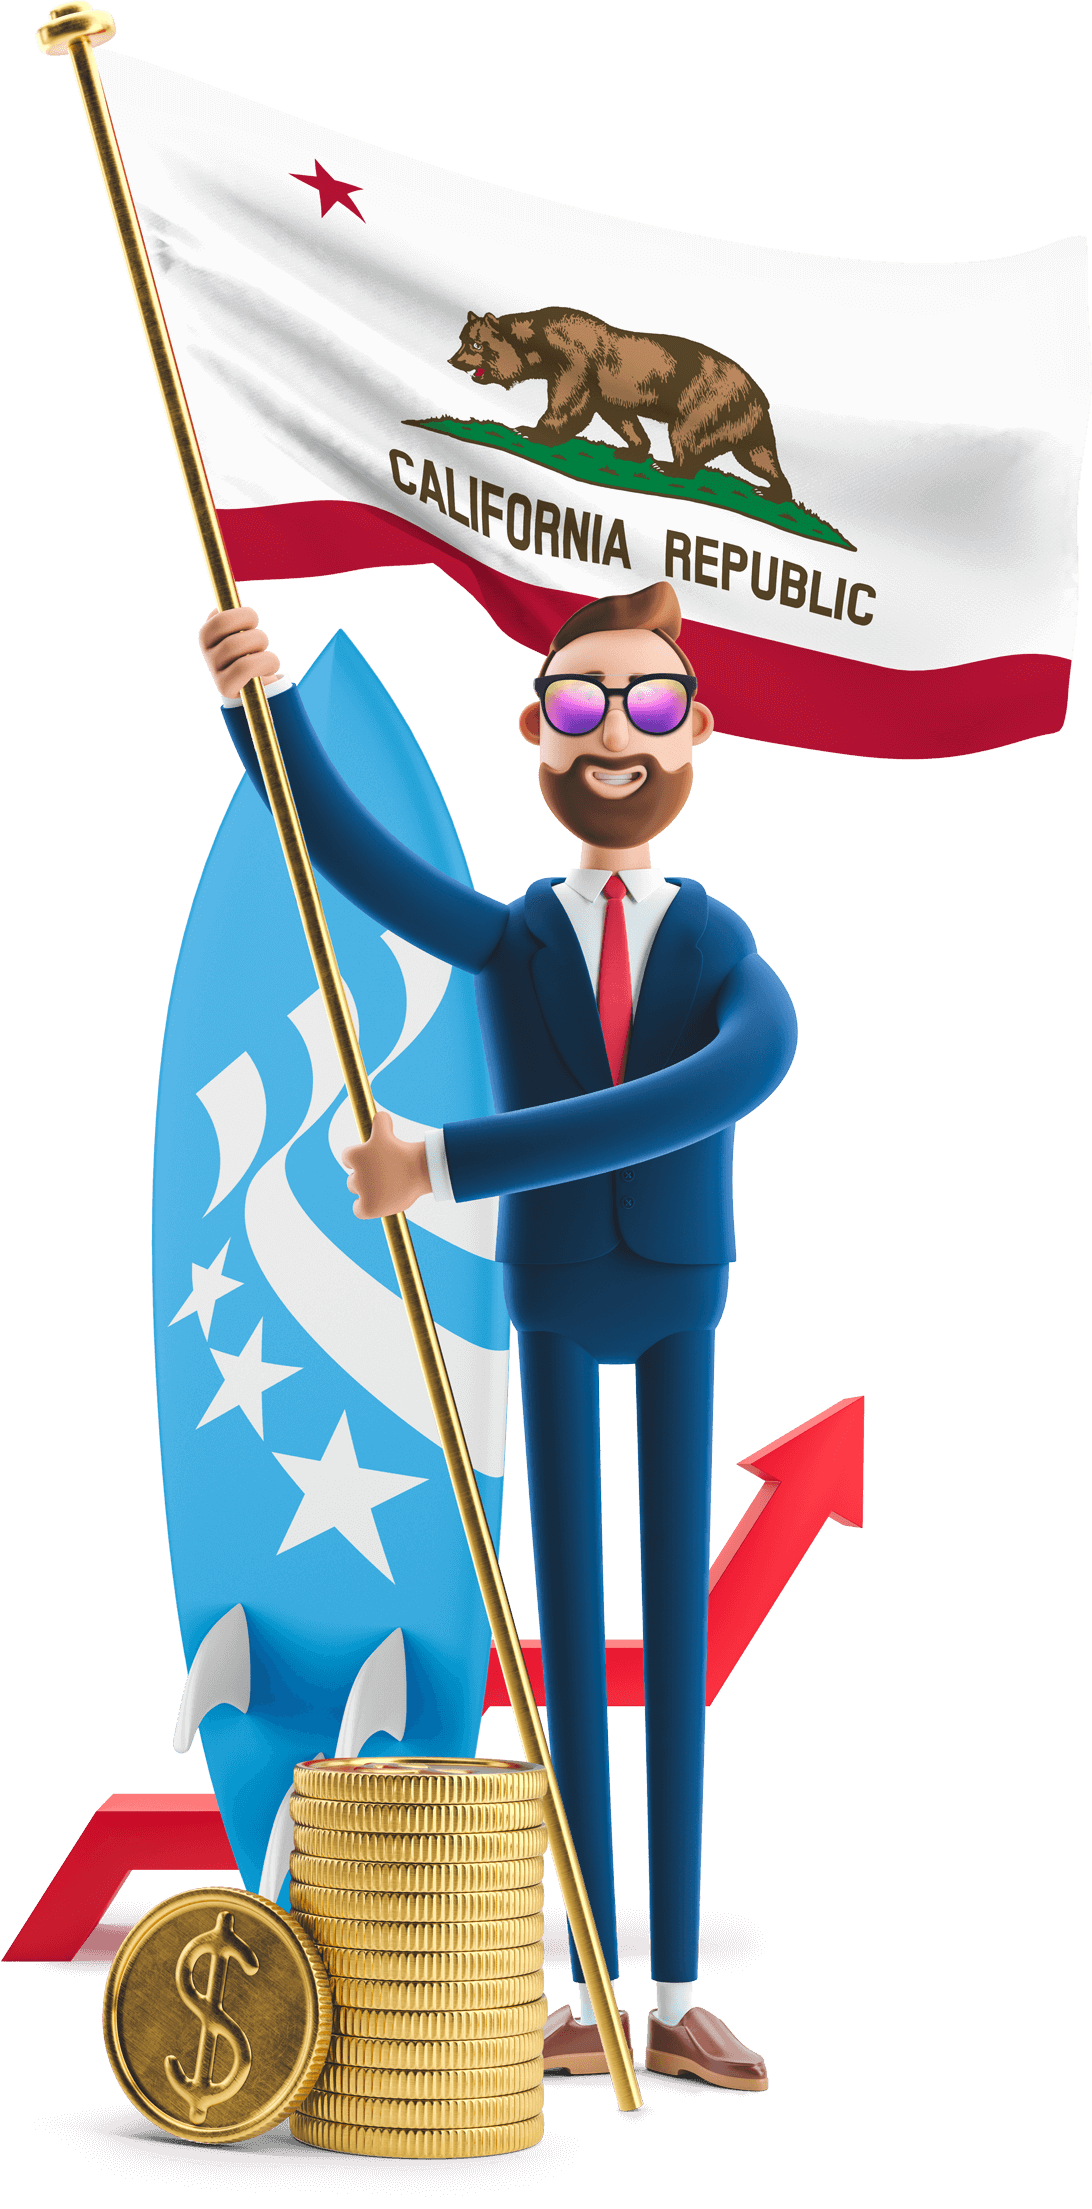 California flag held by MetCredit USA businessman who's wearing sunglasses and standing beside a surfboard and a stack of oversized coins